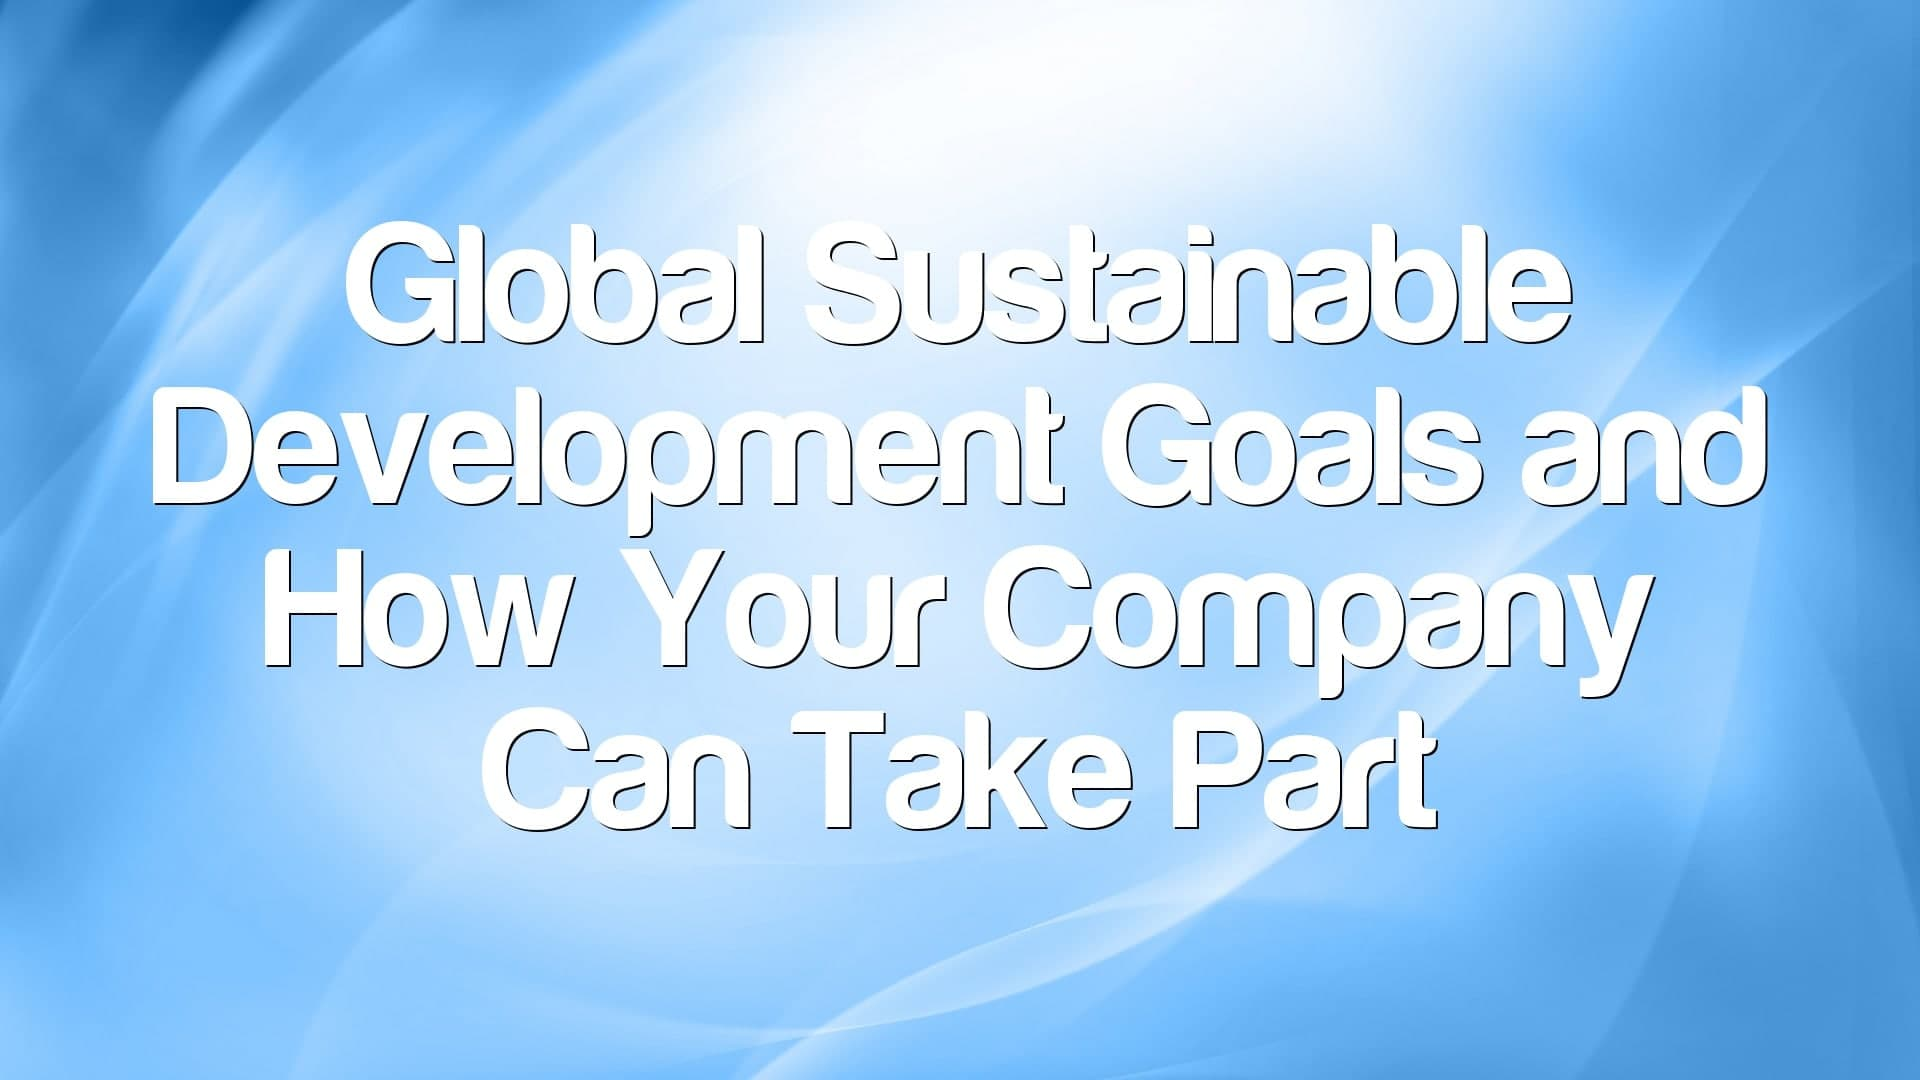 Global Sustainable Development Goals and How Your Company Can Take Part